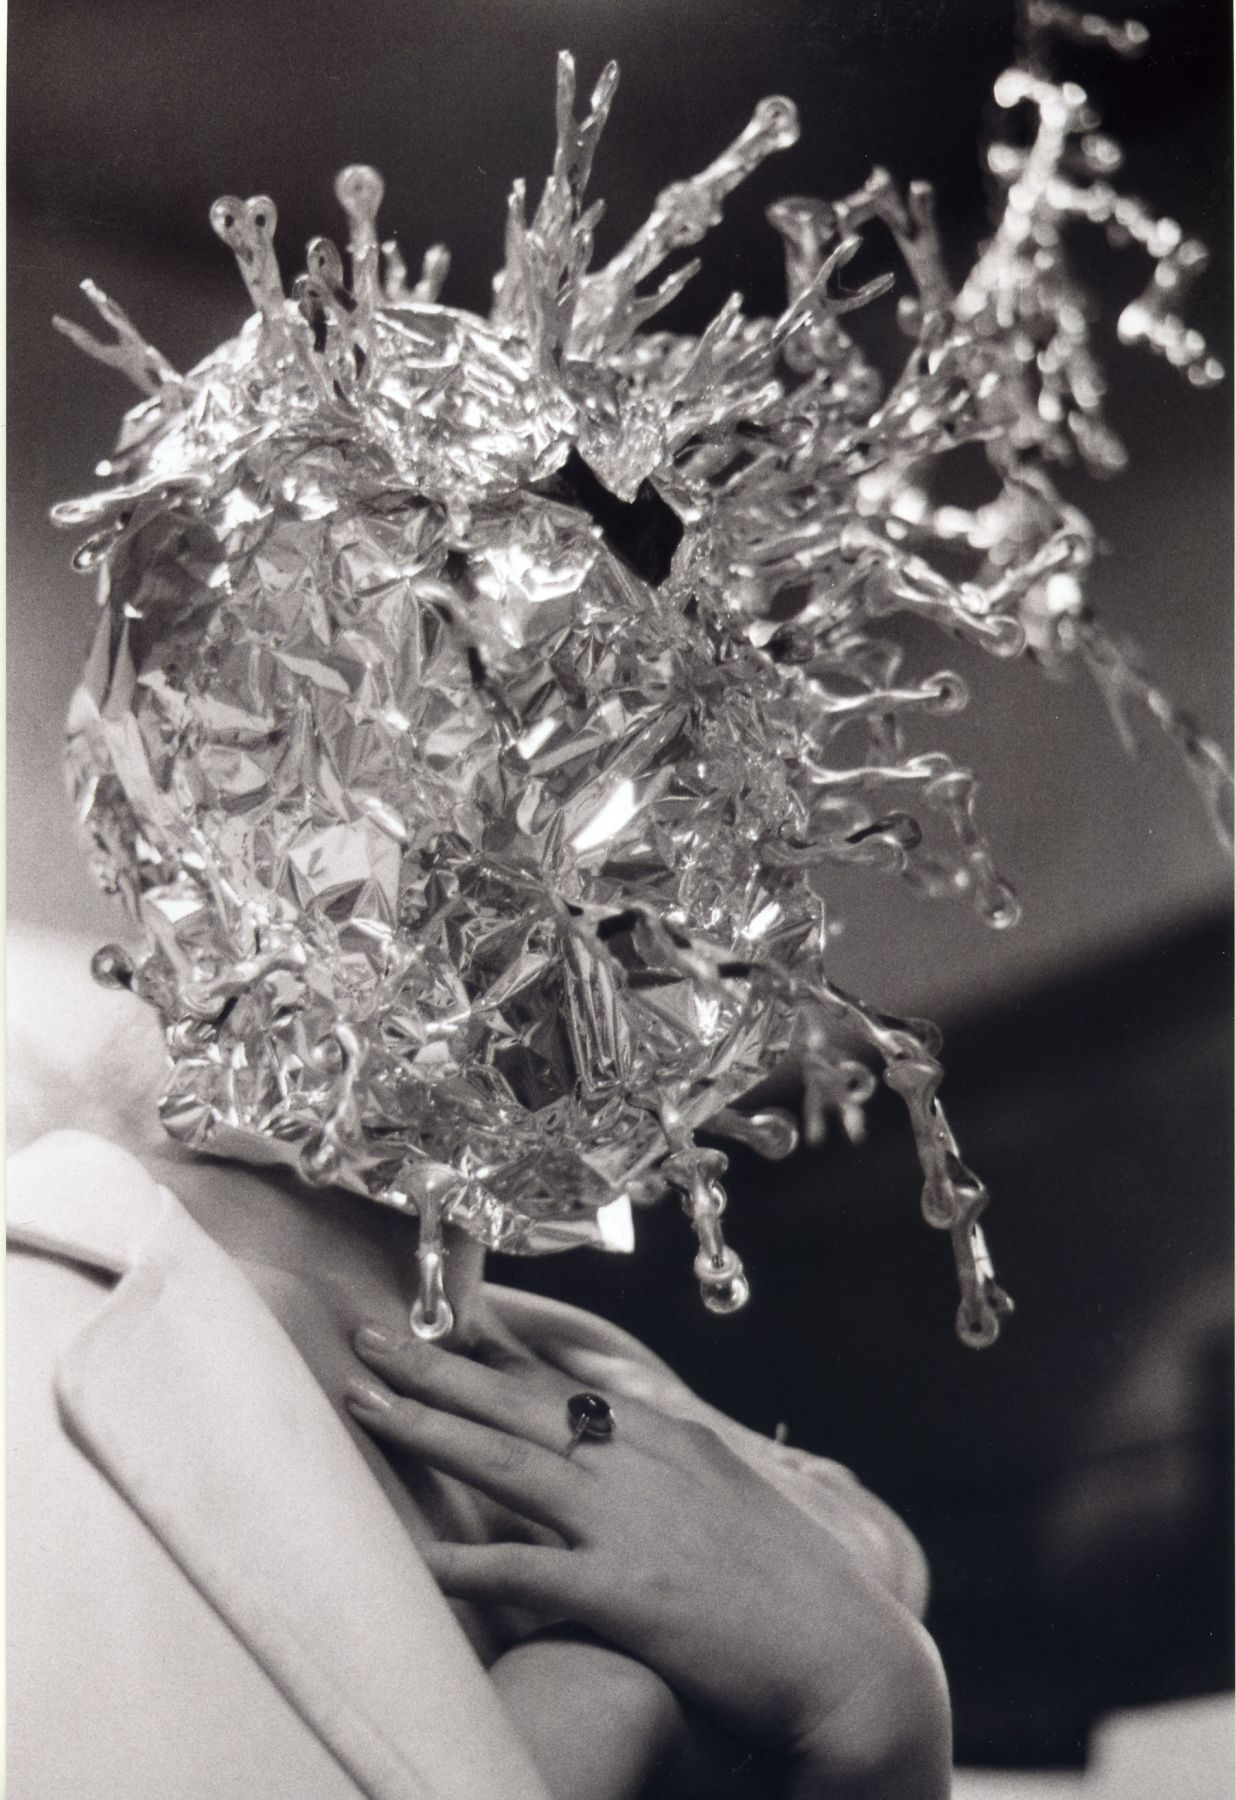 photograph of a woman with crystals covering her head by minoru hirata